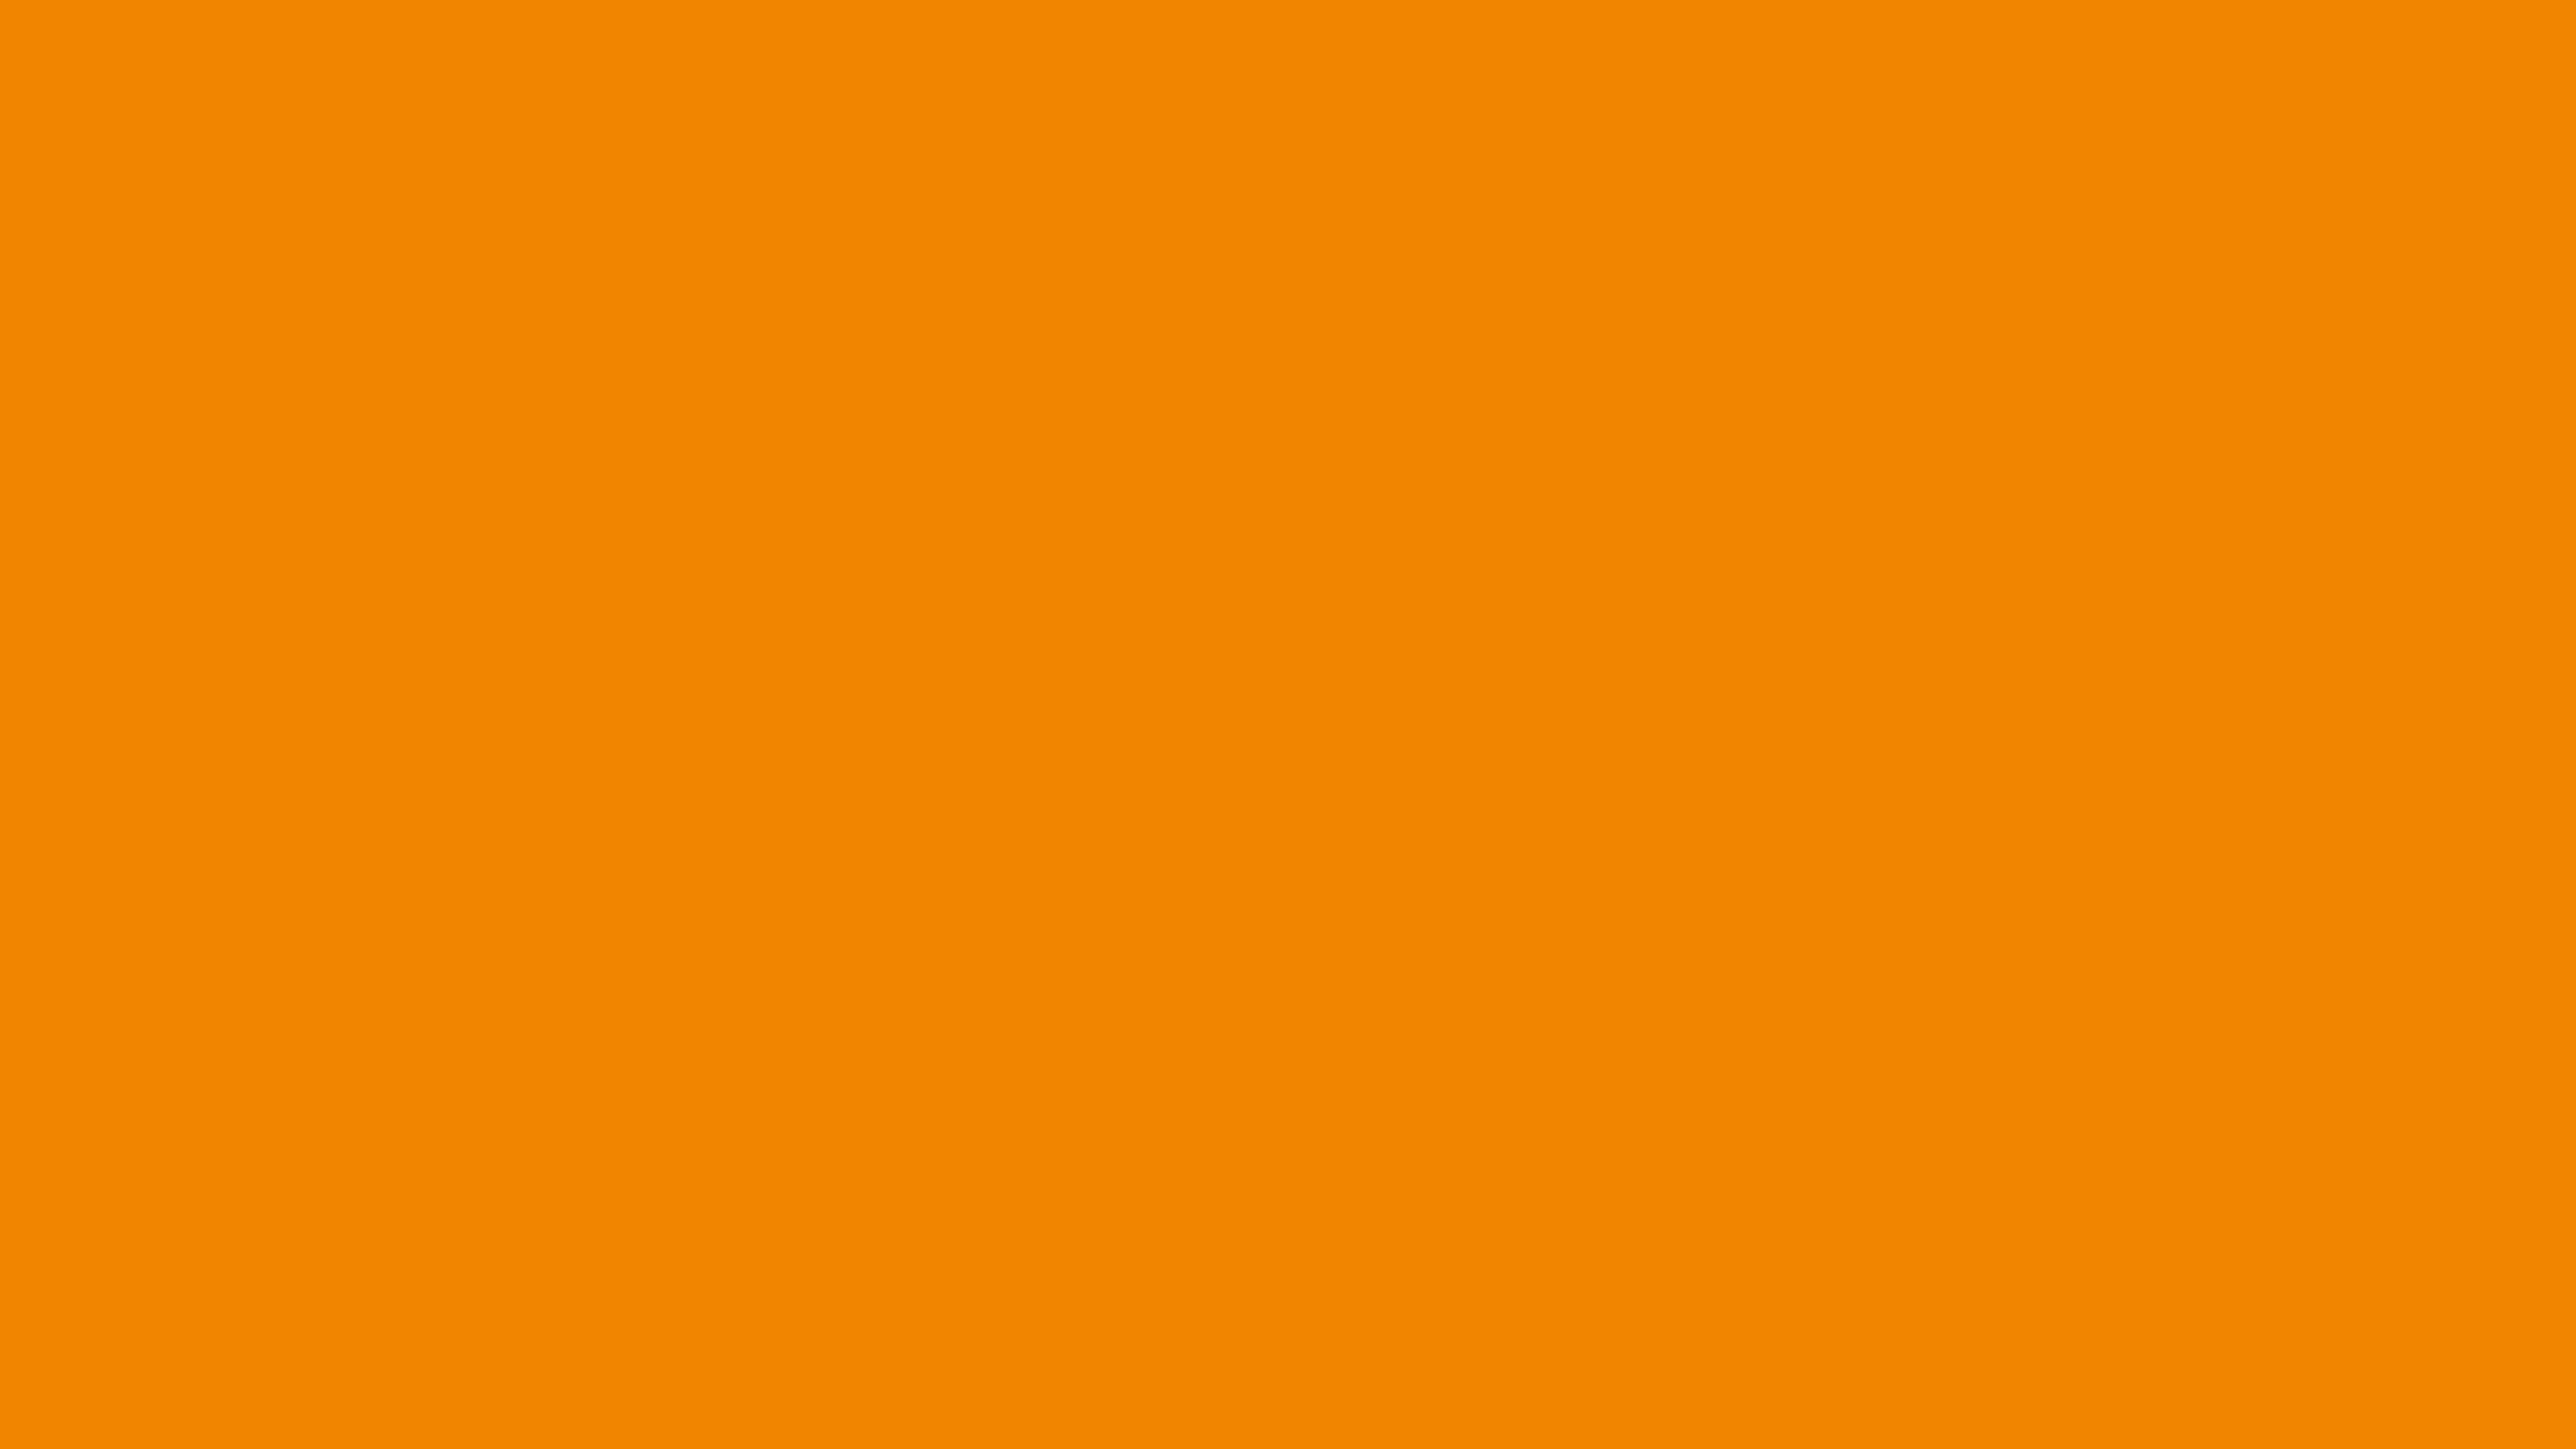 7680x4320 Tangerine Solid Color Background